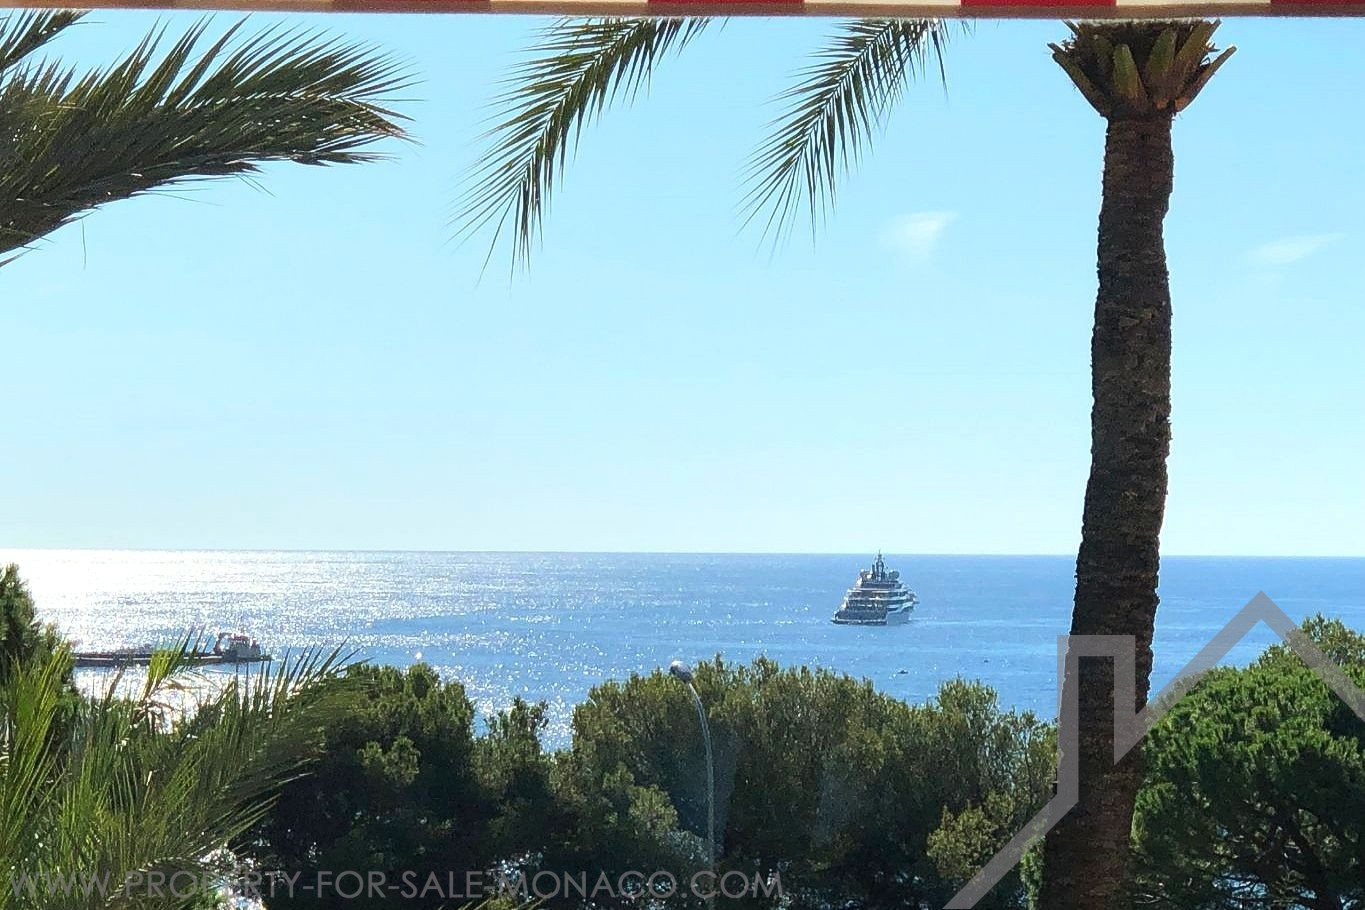 MONTE CARLO SUN - Sun Park - Properties for sale in Monaco